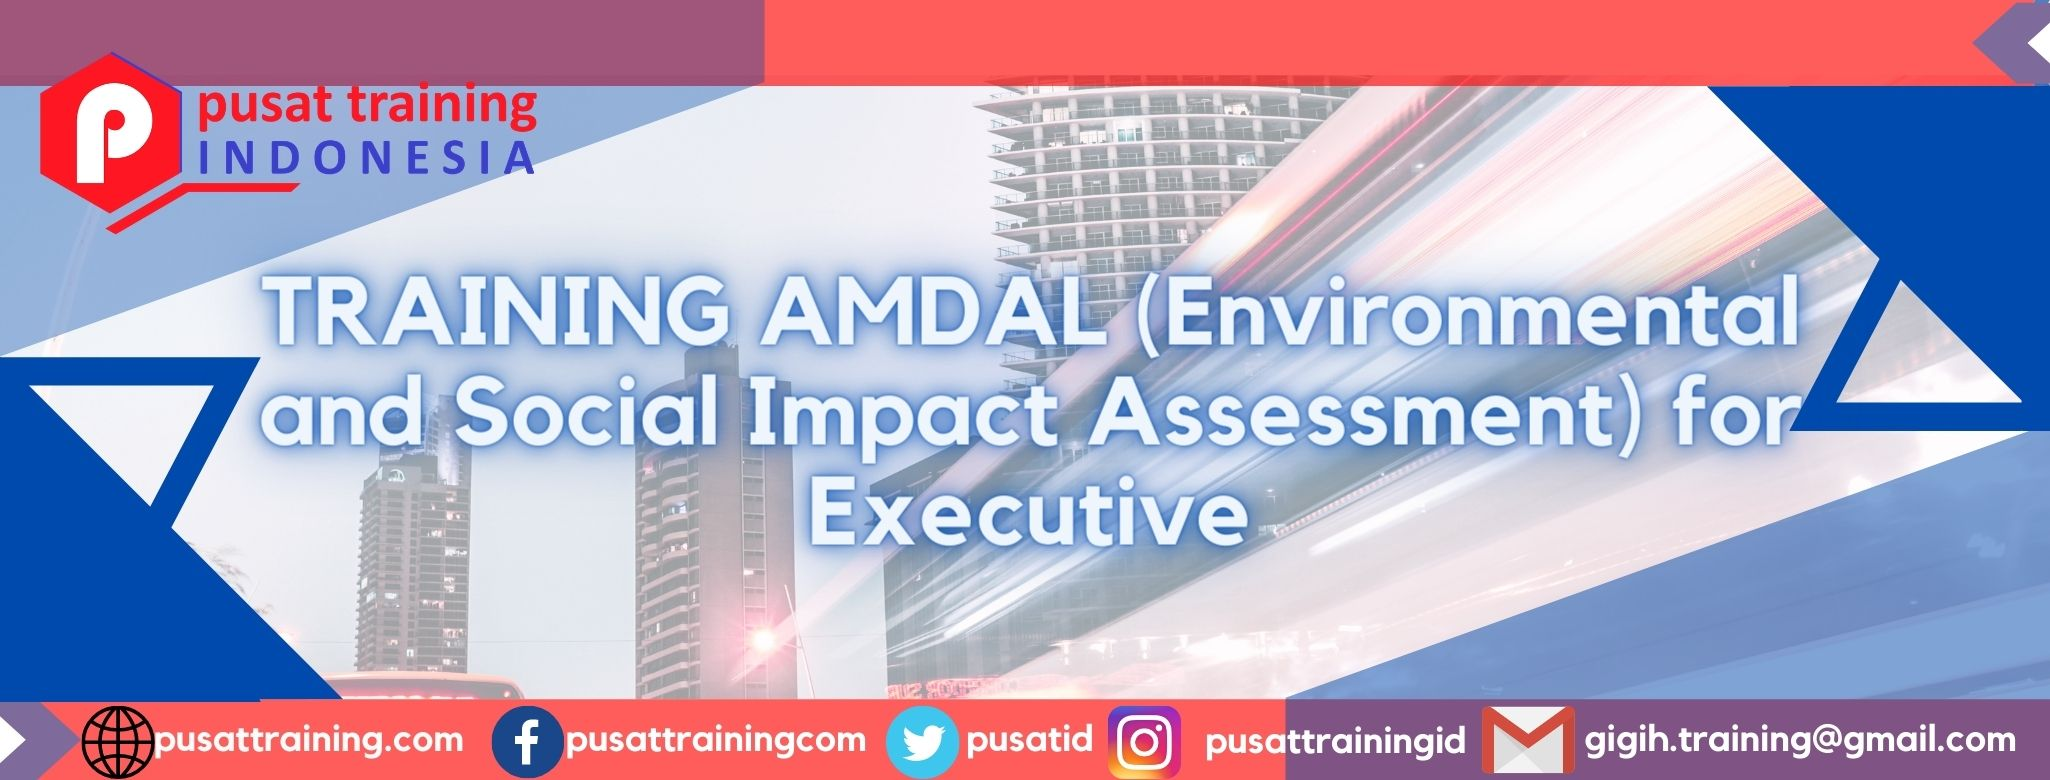 TRAINING AMDAL (Environmental and Social Impact Assessment) for Executive